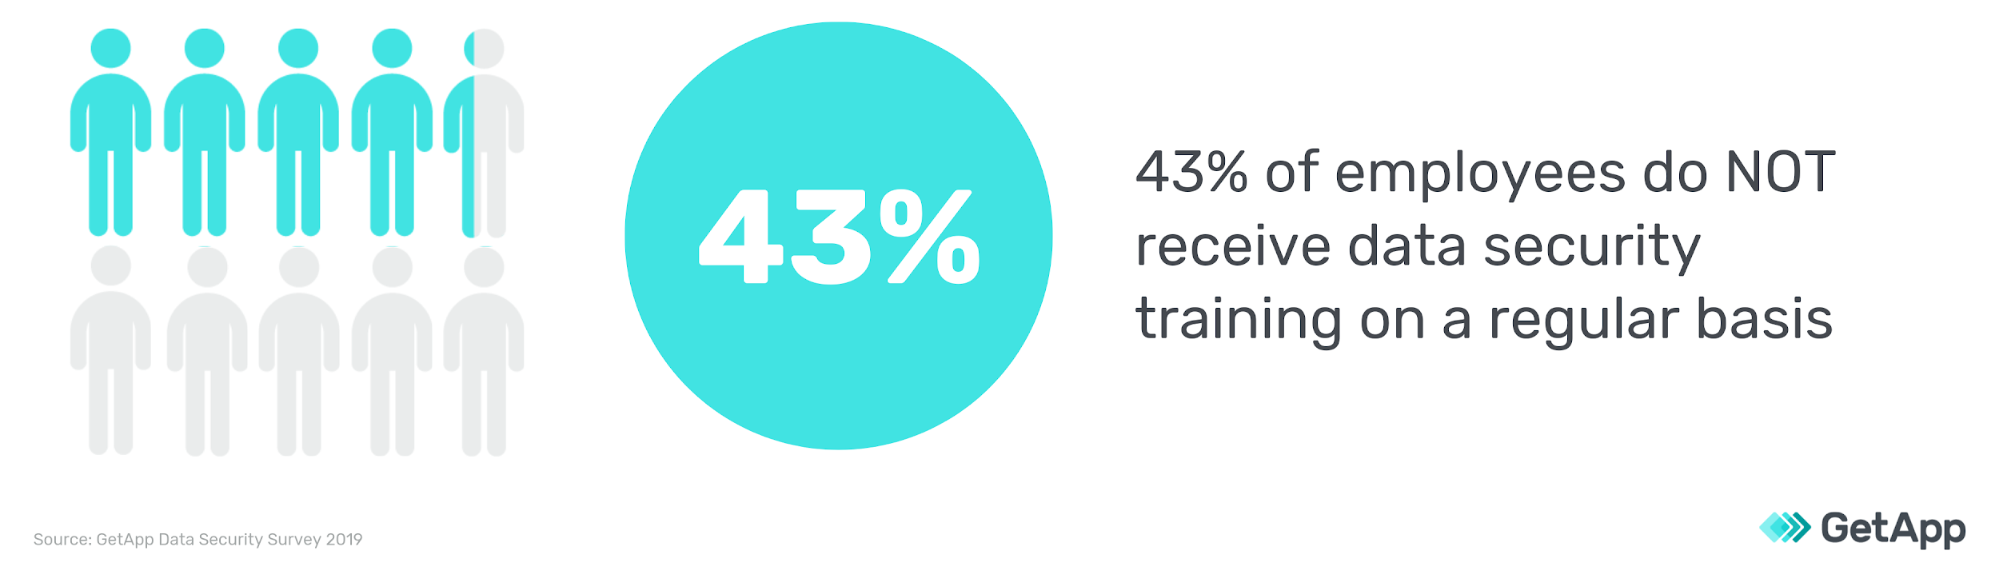 43 percent of employees do not receive data security training on a regular basis graph